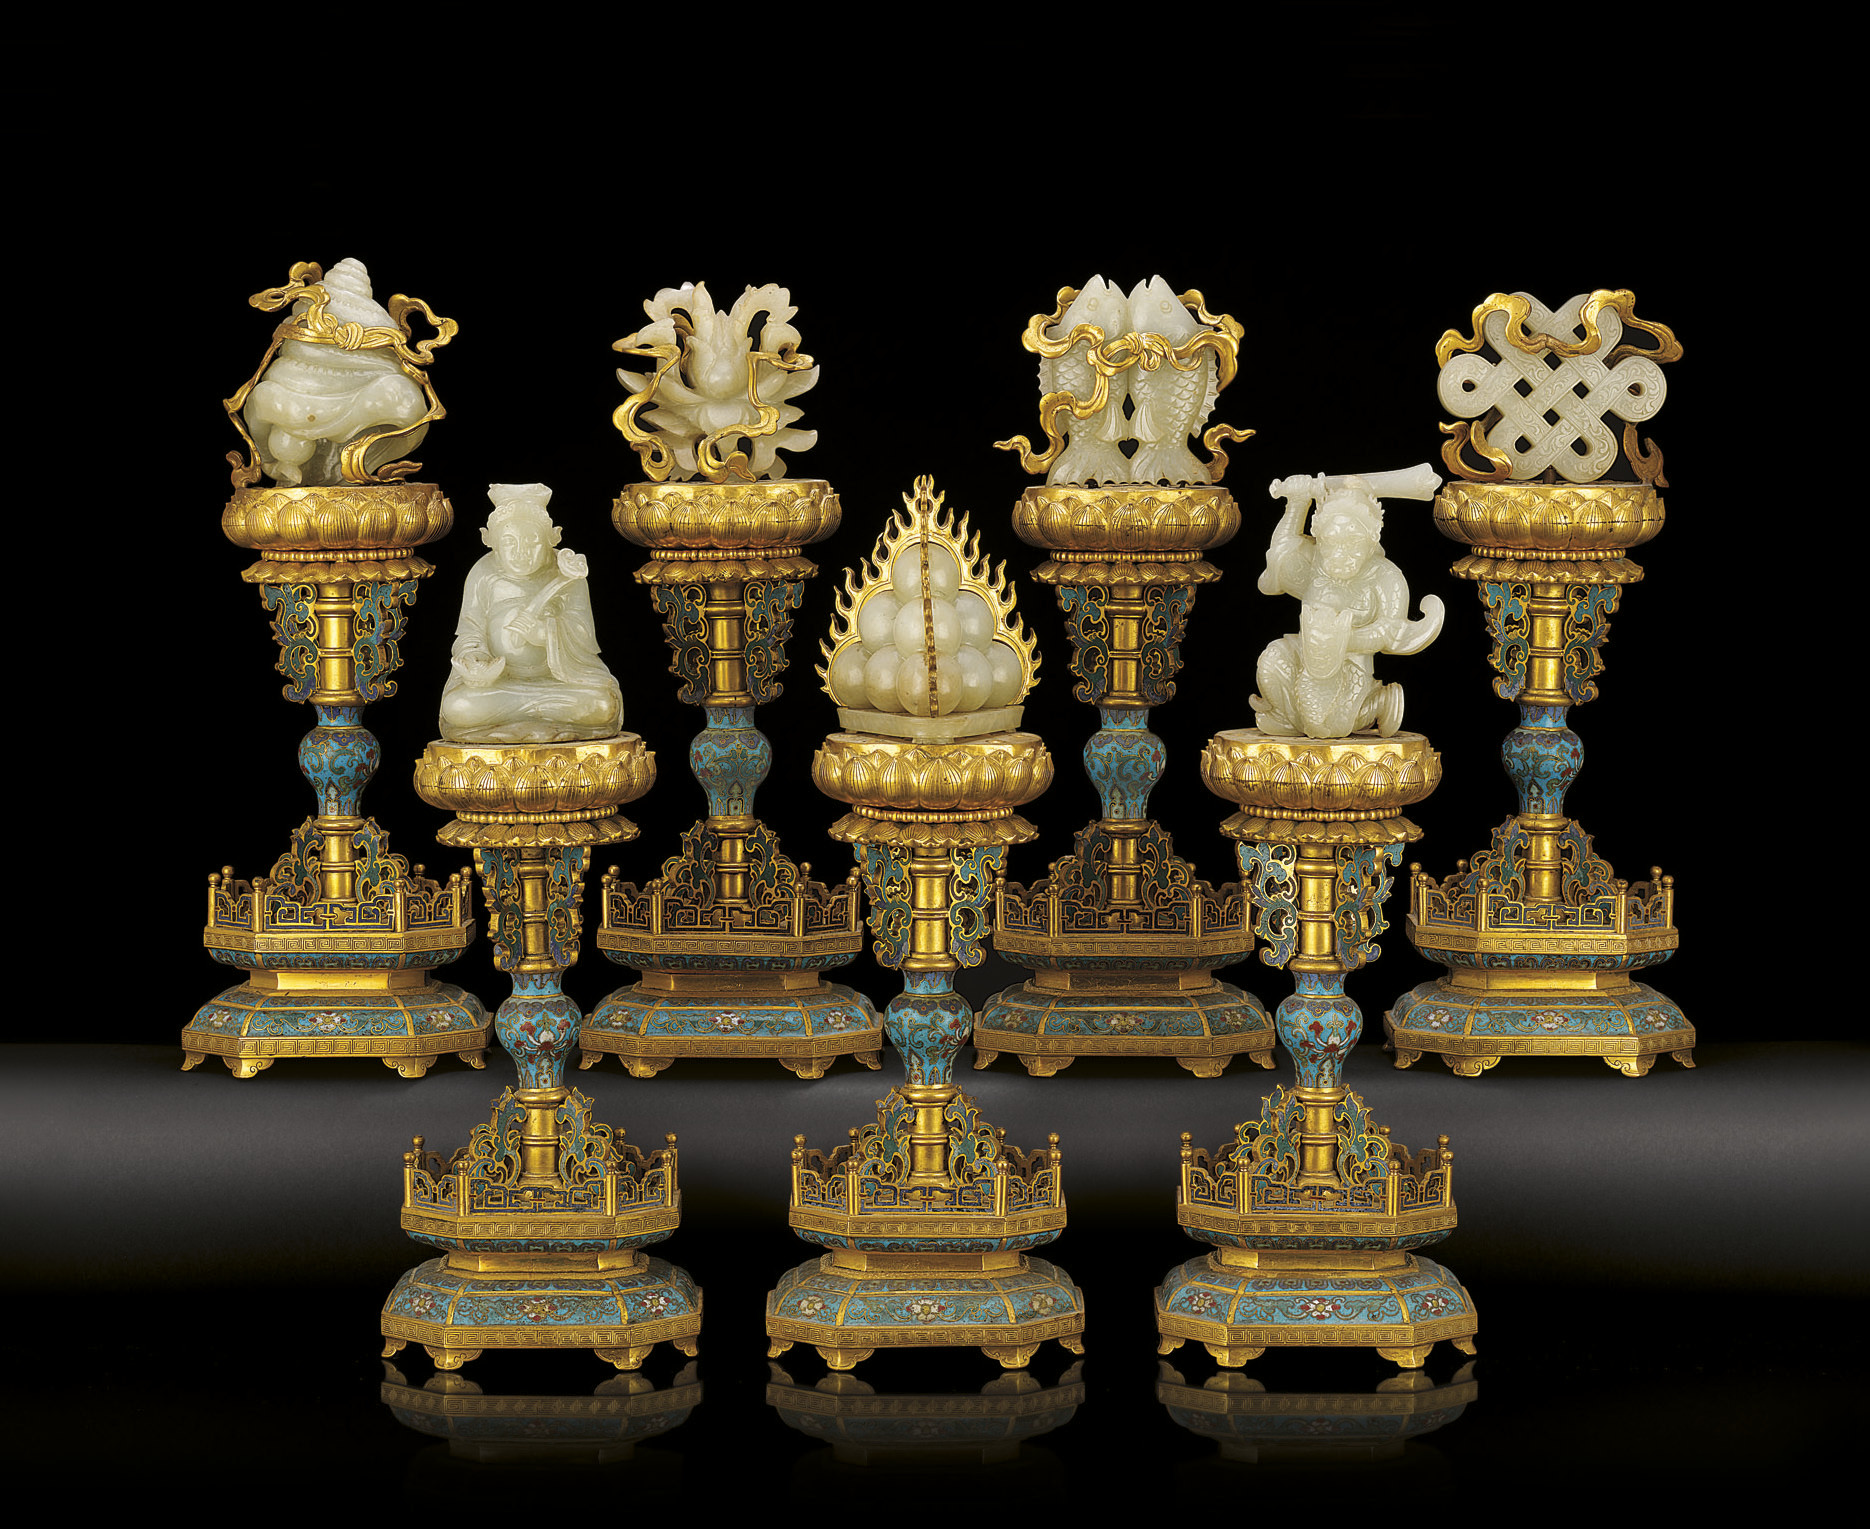 AN EXTREMELY RARE GROUP OF SEVEN IMPERIAL CLOISONNE ENAMEL, GILT BRONZE AND WHITE JADE ALTAR EMBLEMS